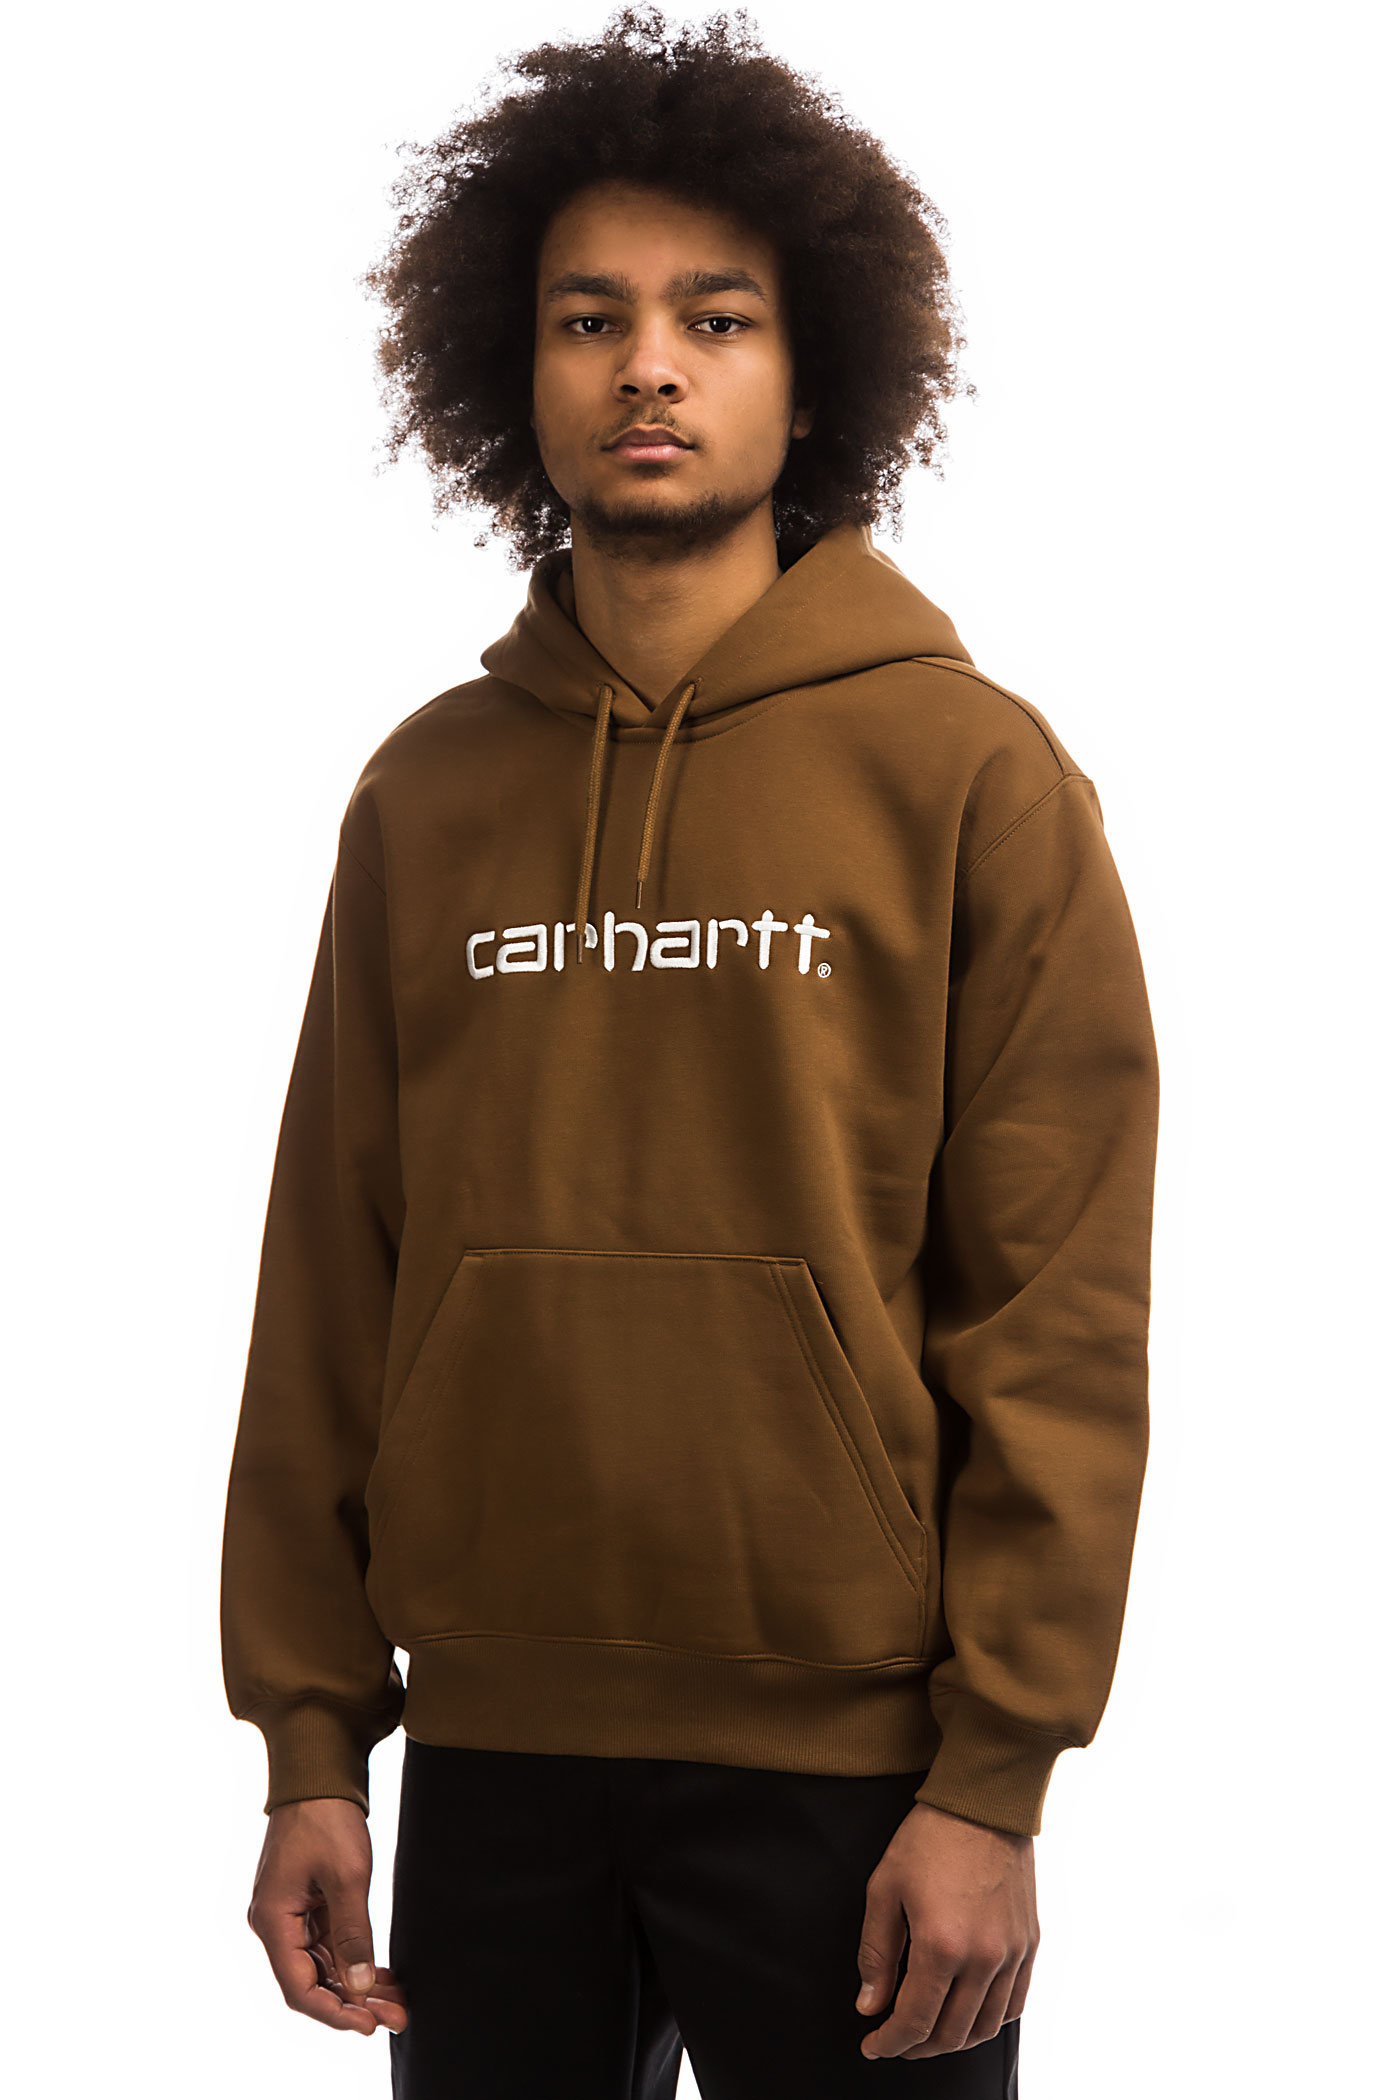 Carhartt À Sweat Capuchehamilton White Wip Brown Basic 4Ajq5cL3R